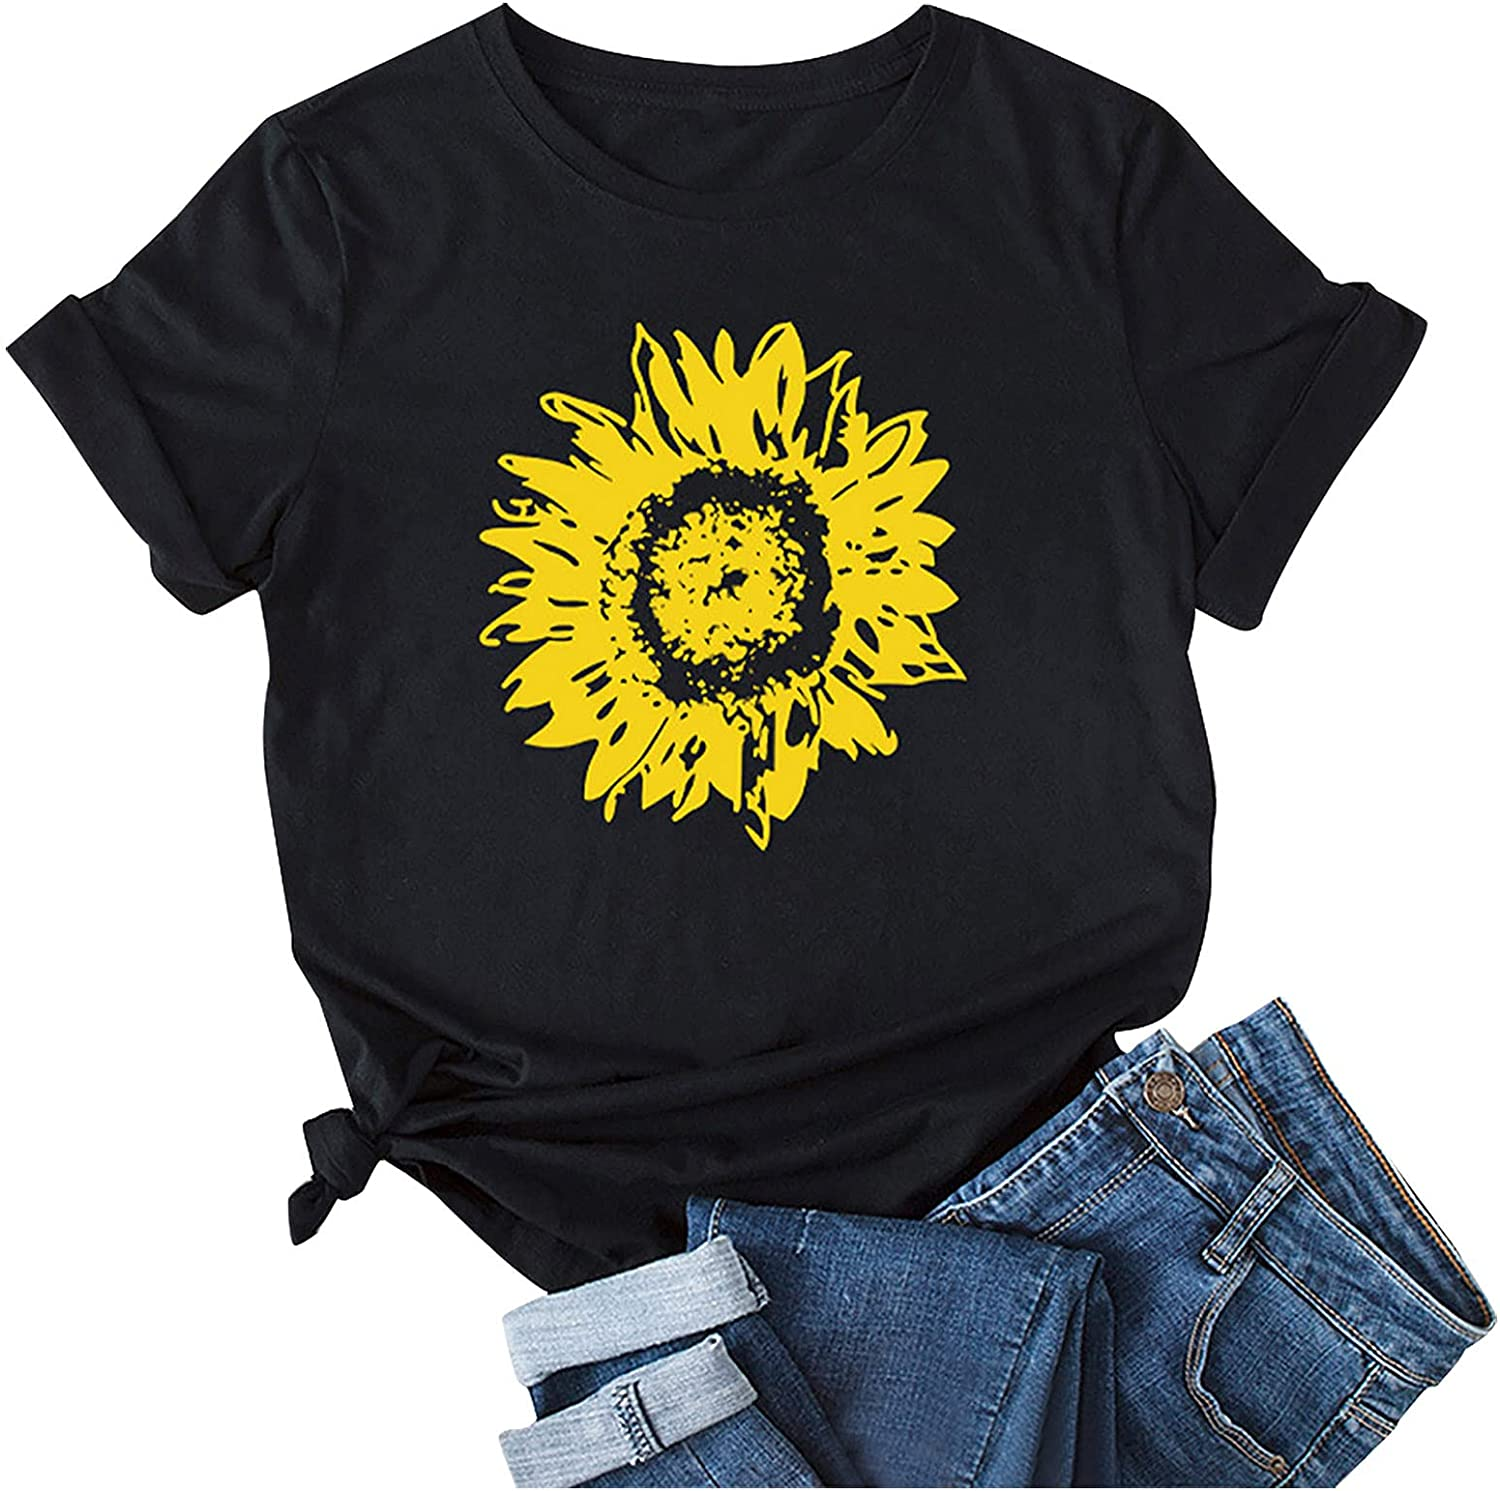 Sunflower Daisy Graphic Tee Womens Tops Summer Short Sleeve O Neck Loose T Shirt Fashion Blouse Casual Tunic Tops